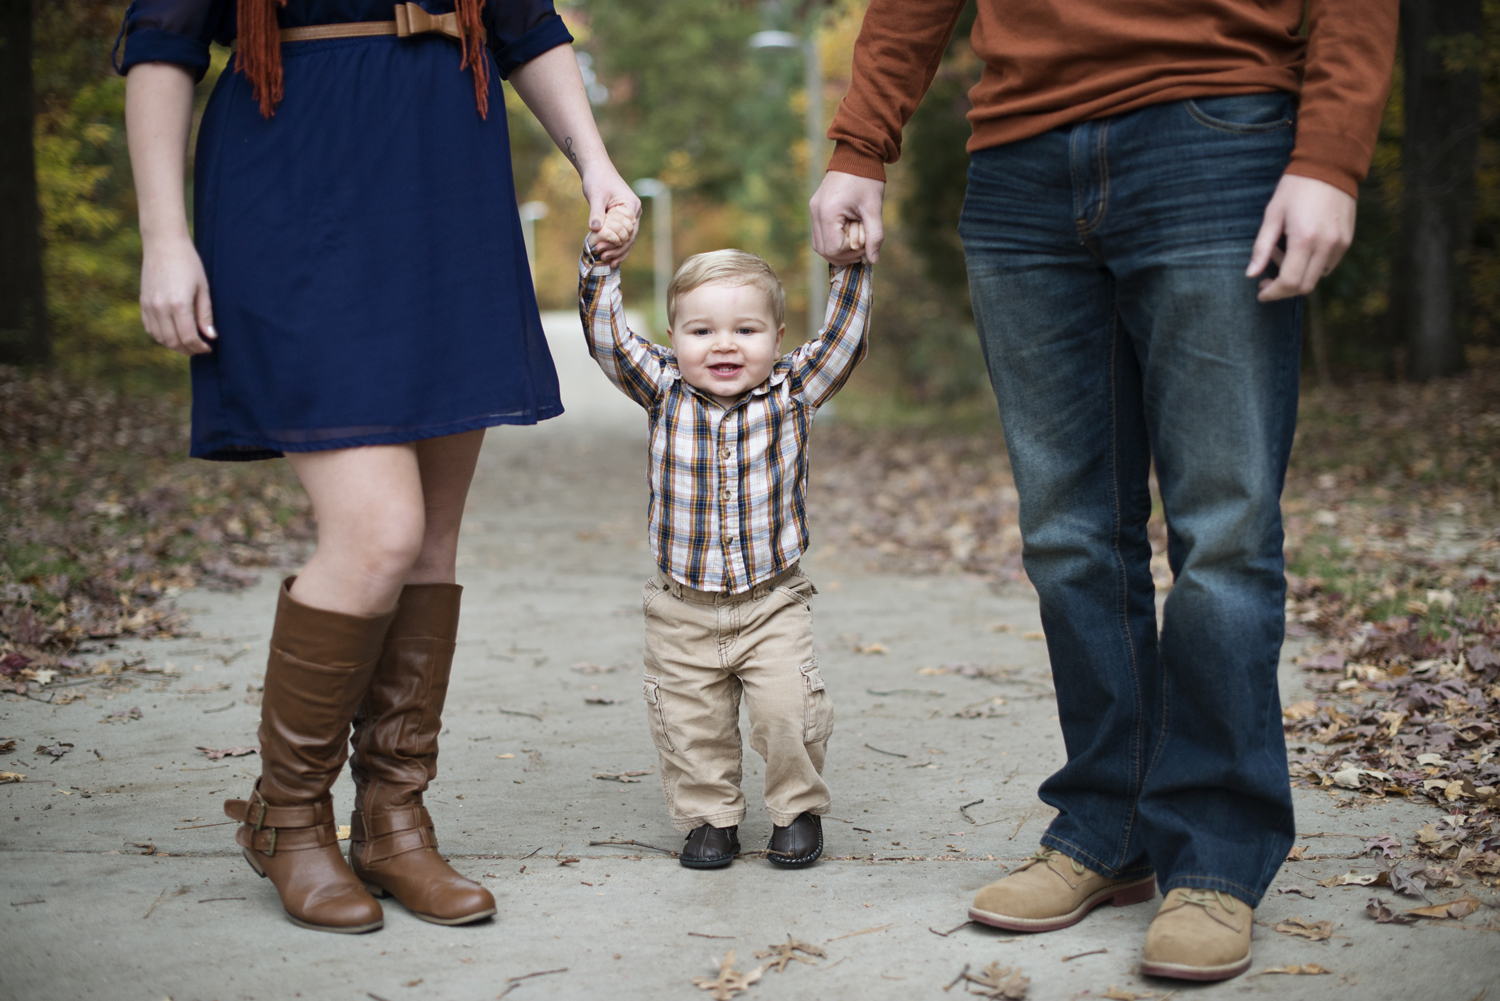 Cute family picture ideas